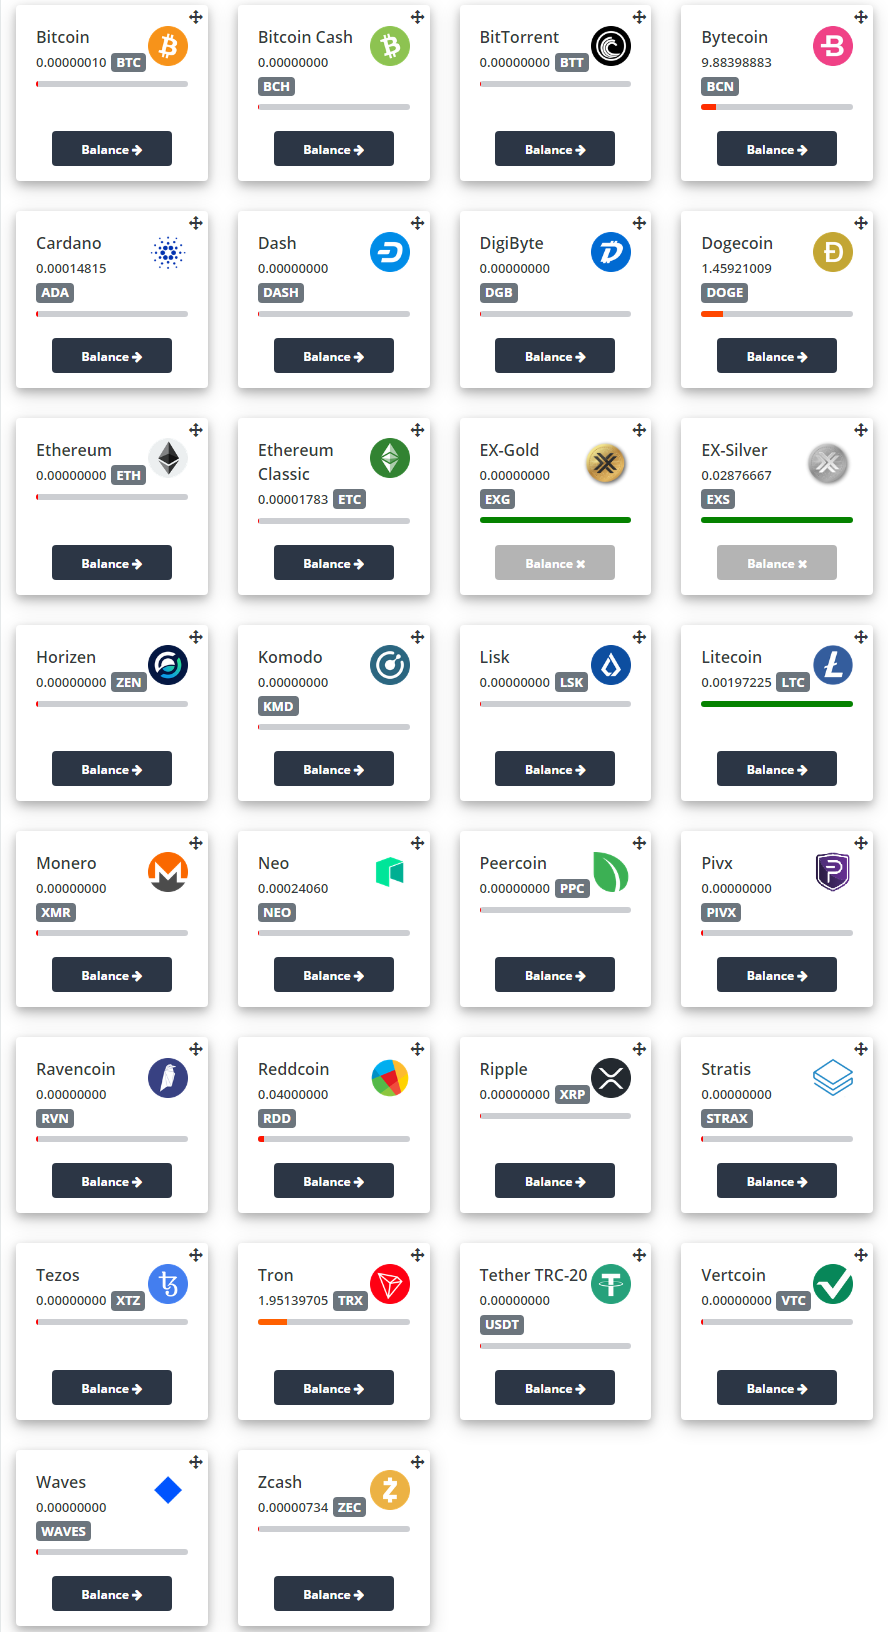 06-04-2021 expresscrypto dashboard.png